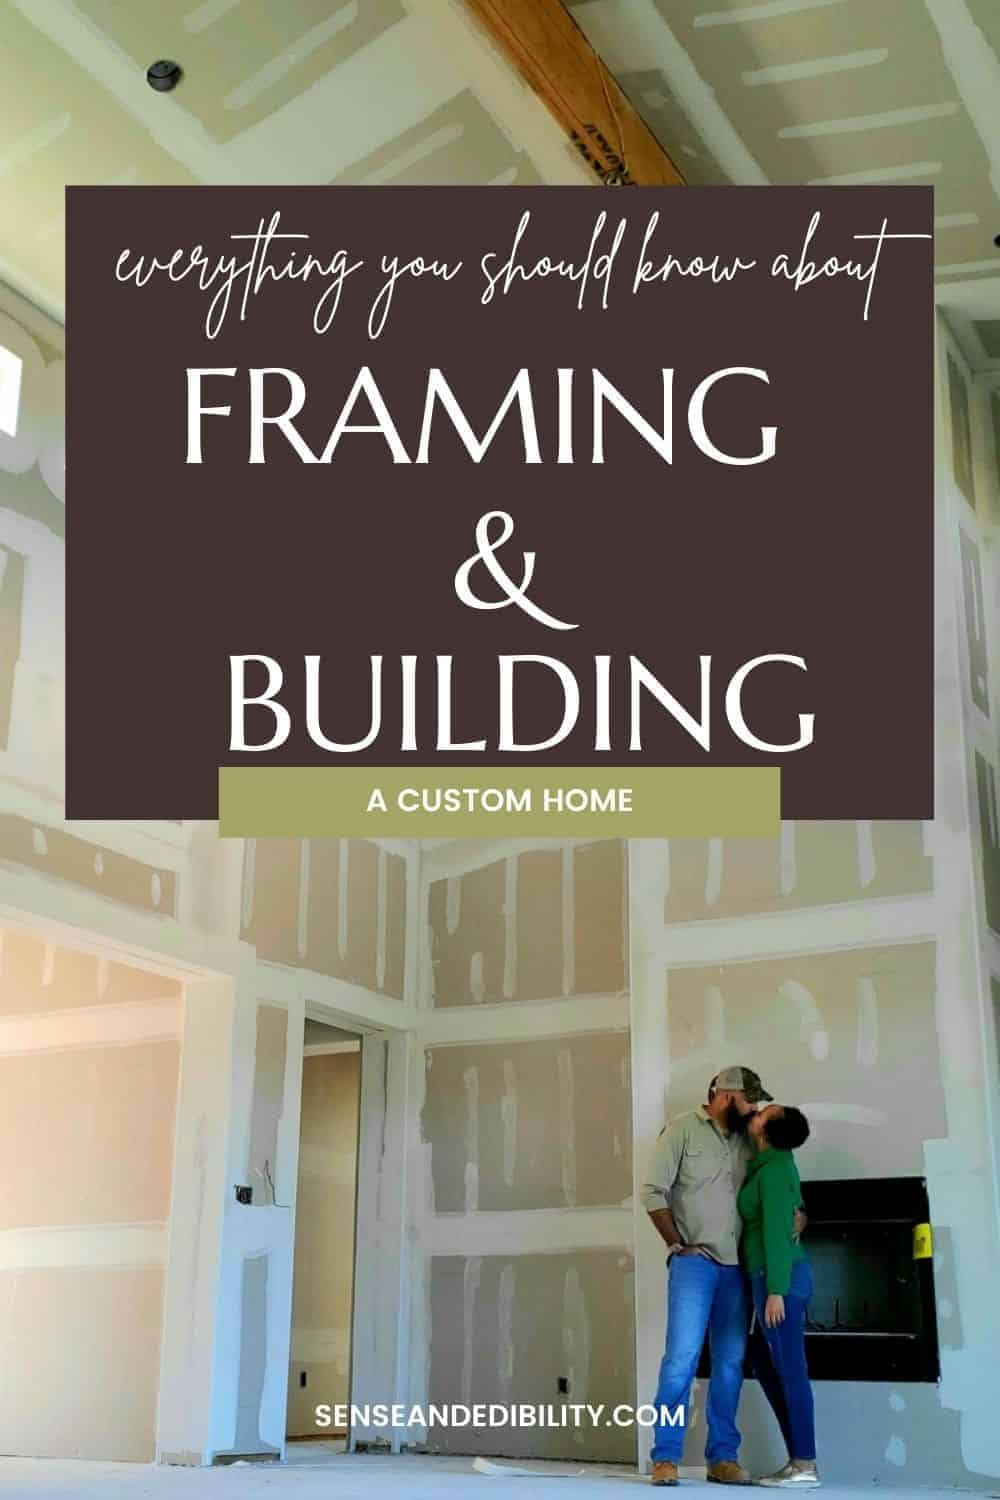 Framing and Building a custom home isn't as hands off for the owner as you may think. There are so many pitfalls to watch out for. Here are our tips for surviving the process. #customhomebuild #homebuild #buildingahome #customhome #customhomebuilders #homebuilders #thingstowatchoutfor #buyerbeware #framingandbuildingahome #framingahome #buildingahome #realestate #foreverhome #house #dreamhome #lessonslearned #projectmanagers #pouringfoundation #lifewithsenseandedibility via @ediblesense